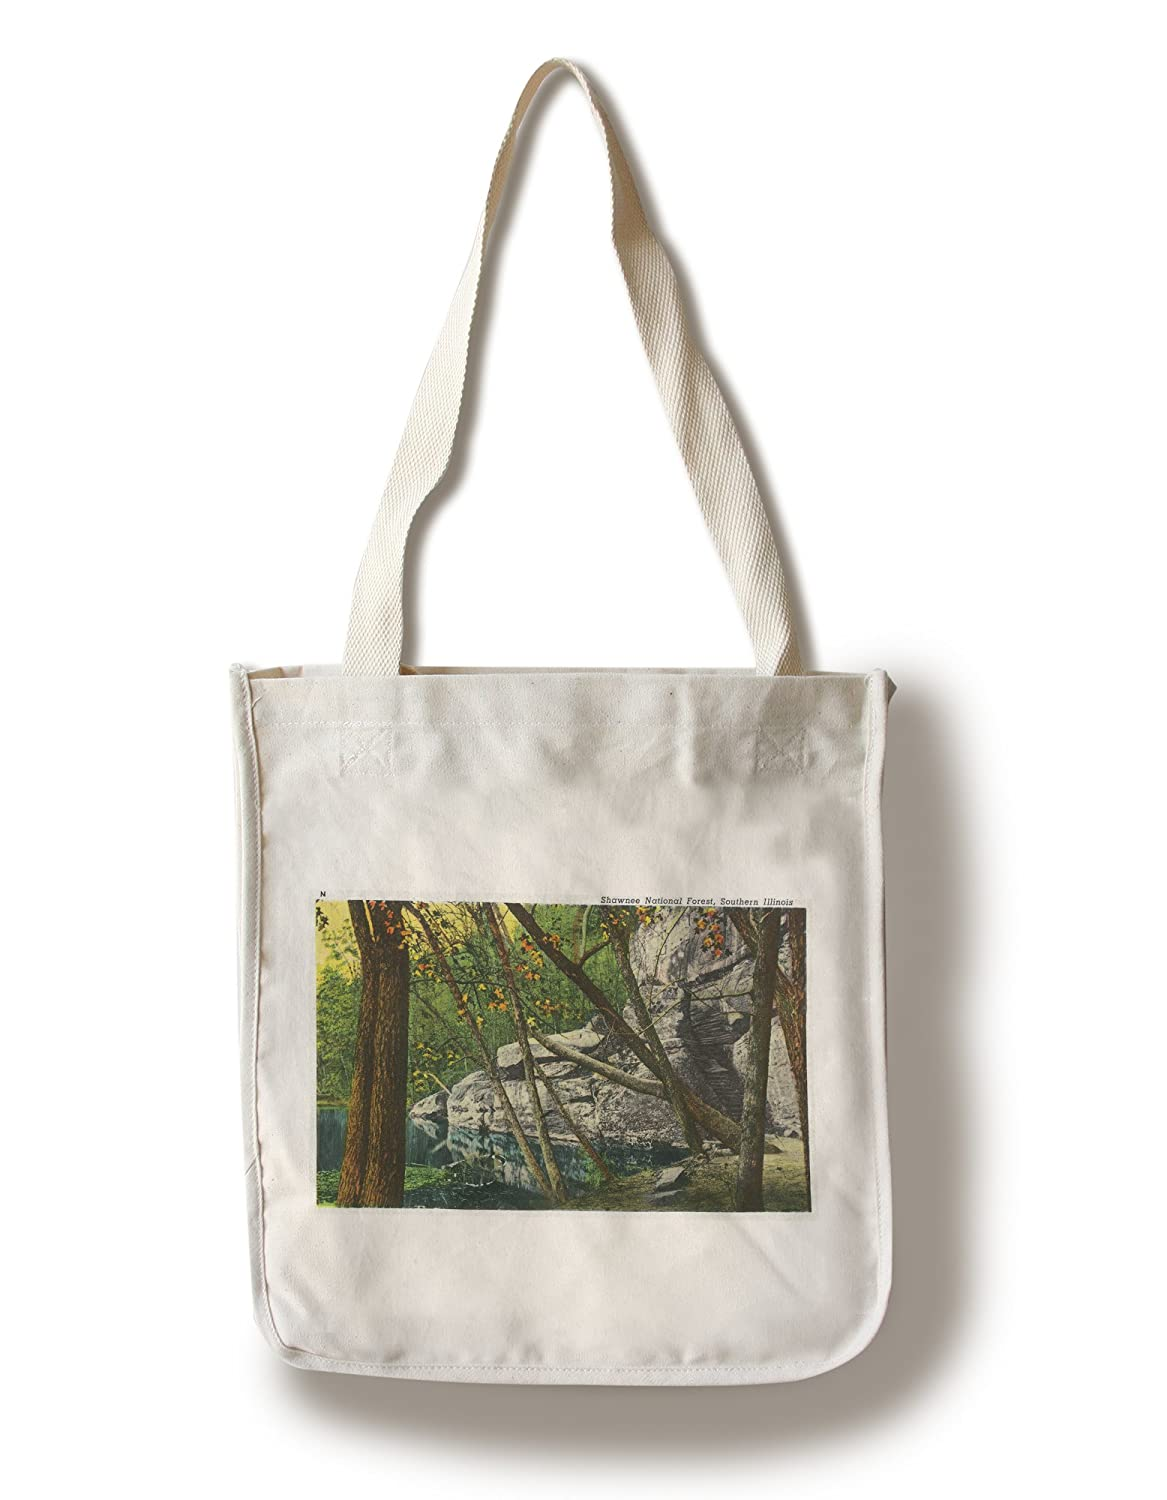 Shawnee National National Forest , Illinois – 風景in LANT-26497-TT Southern Illinois Bag Canvas Tote Bag LANT-26497-TT B074RTWK6Y 8oz Coffee Bag 8oz Coffee Bag, ドリームライフ 介護と健康のお店:54a2153e --- itxassou.fr